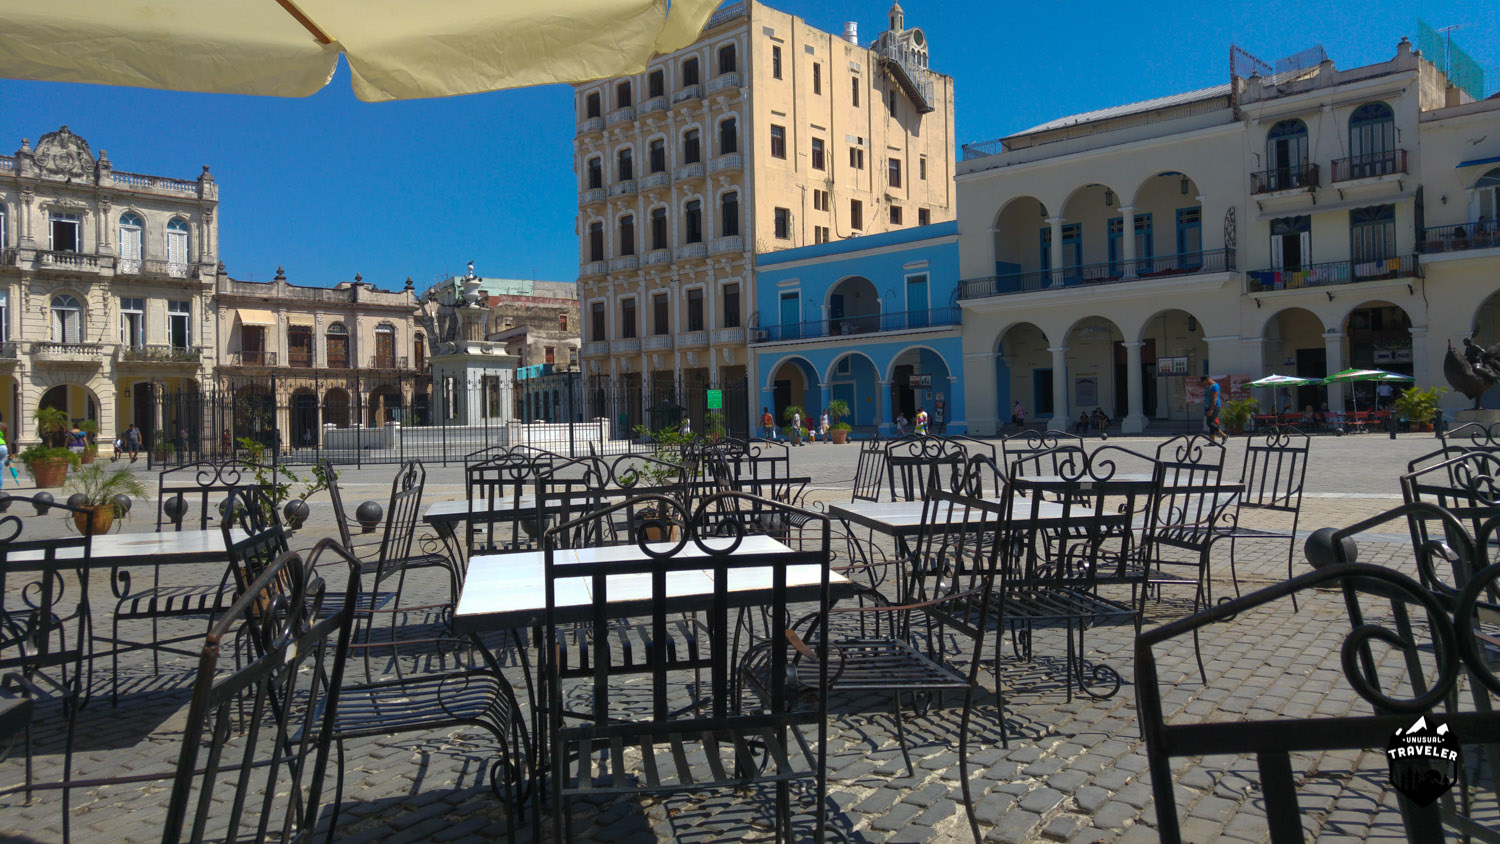 The outside area at Factoria Plaza Vieja before it opens. Nice and calm in Havana Cuba